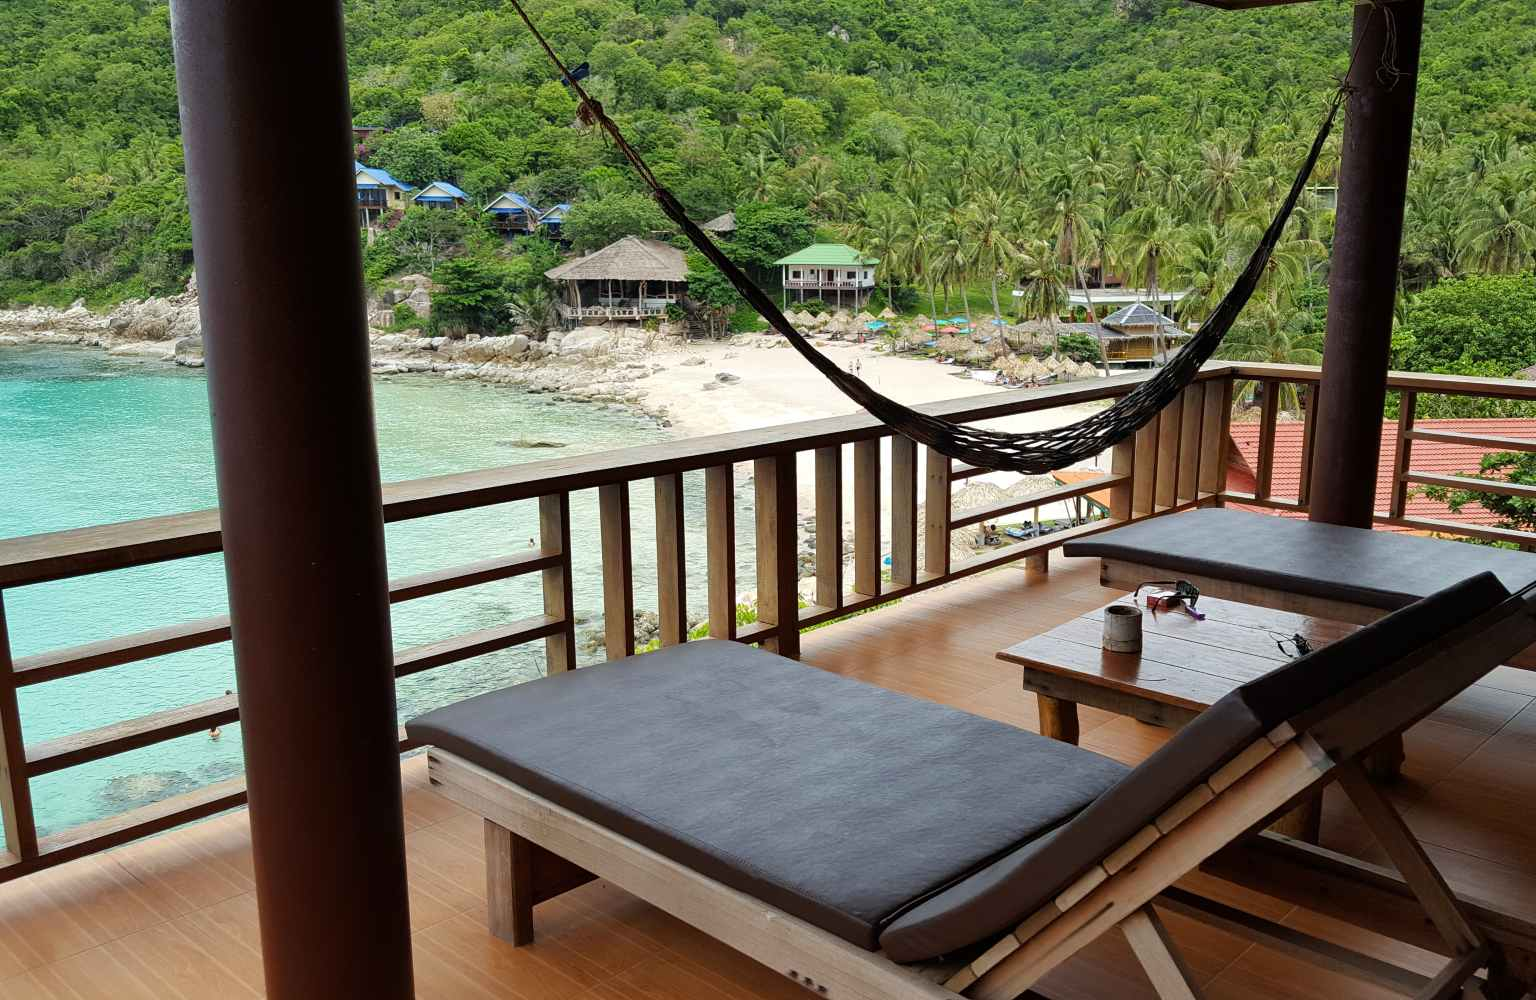 One room of Aow Leuk Grand Hill with terrace and views of the bay of Aow Leuk on Koh Tao